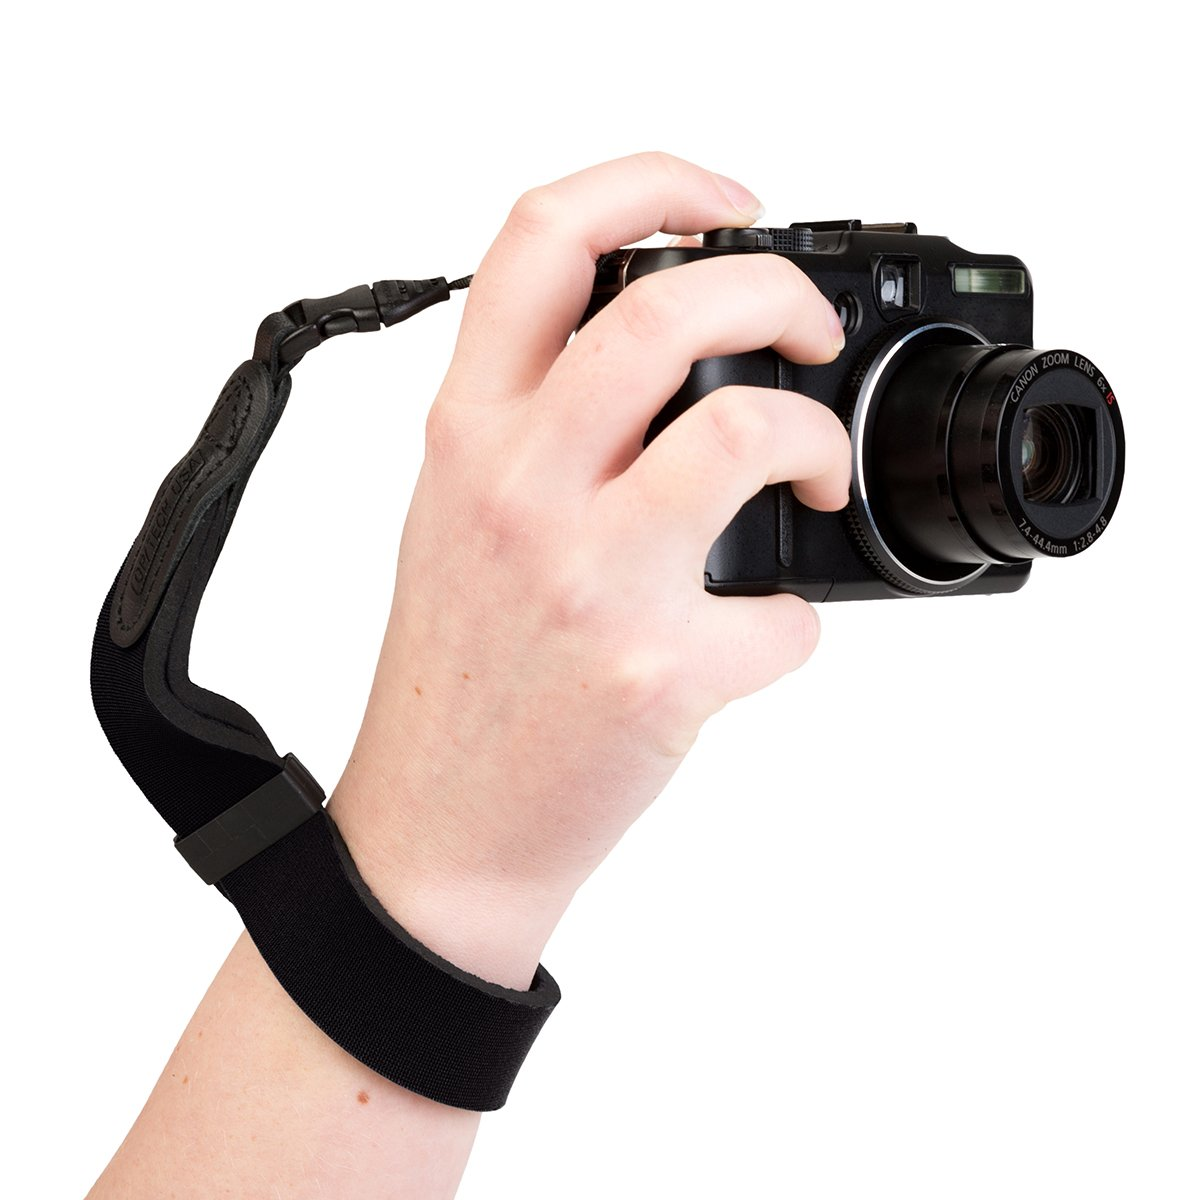 Optech Mirrorless Wrist Strap for Camera - Black